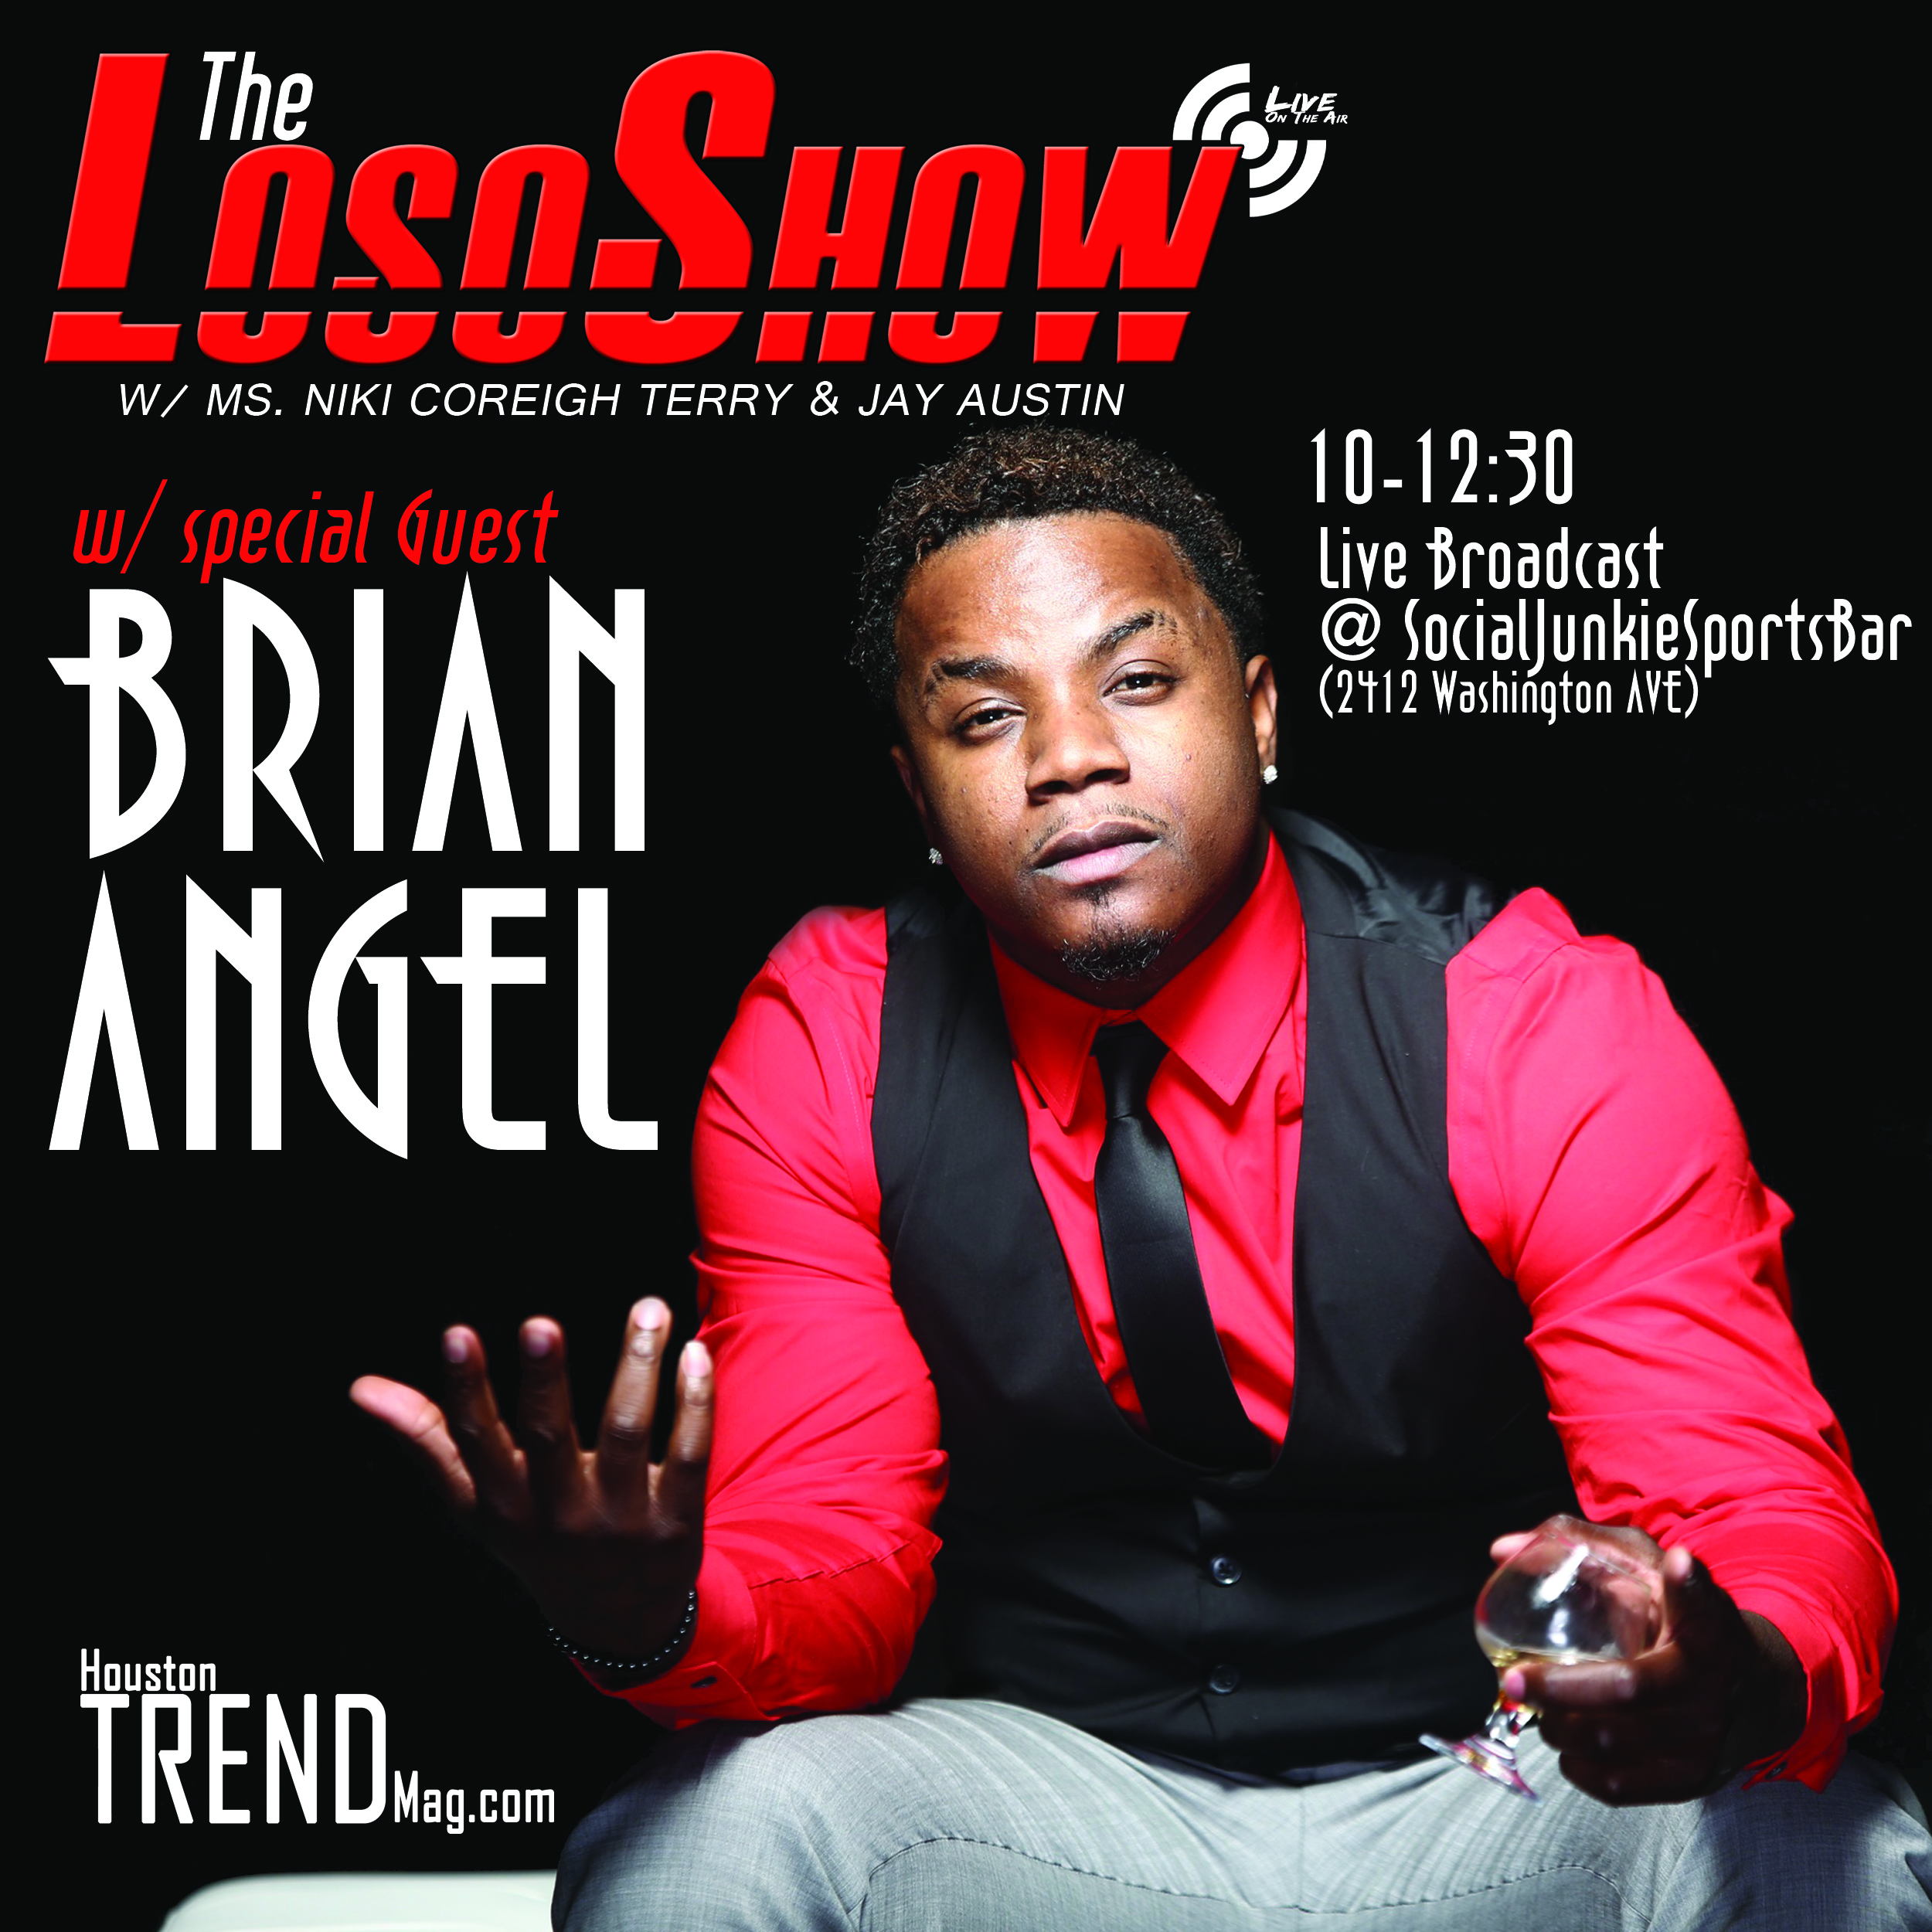 TheLosoShow July 29 Brian Angel